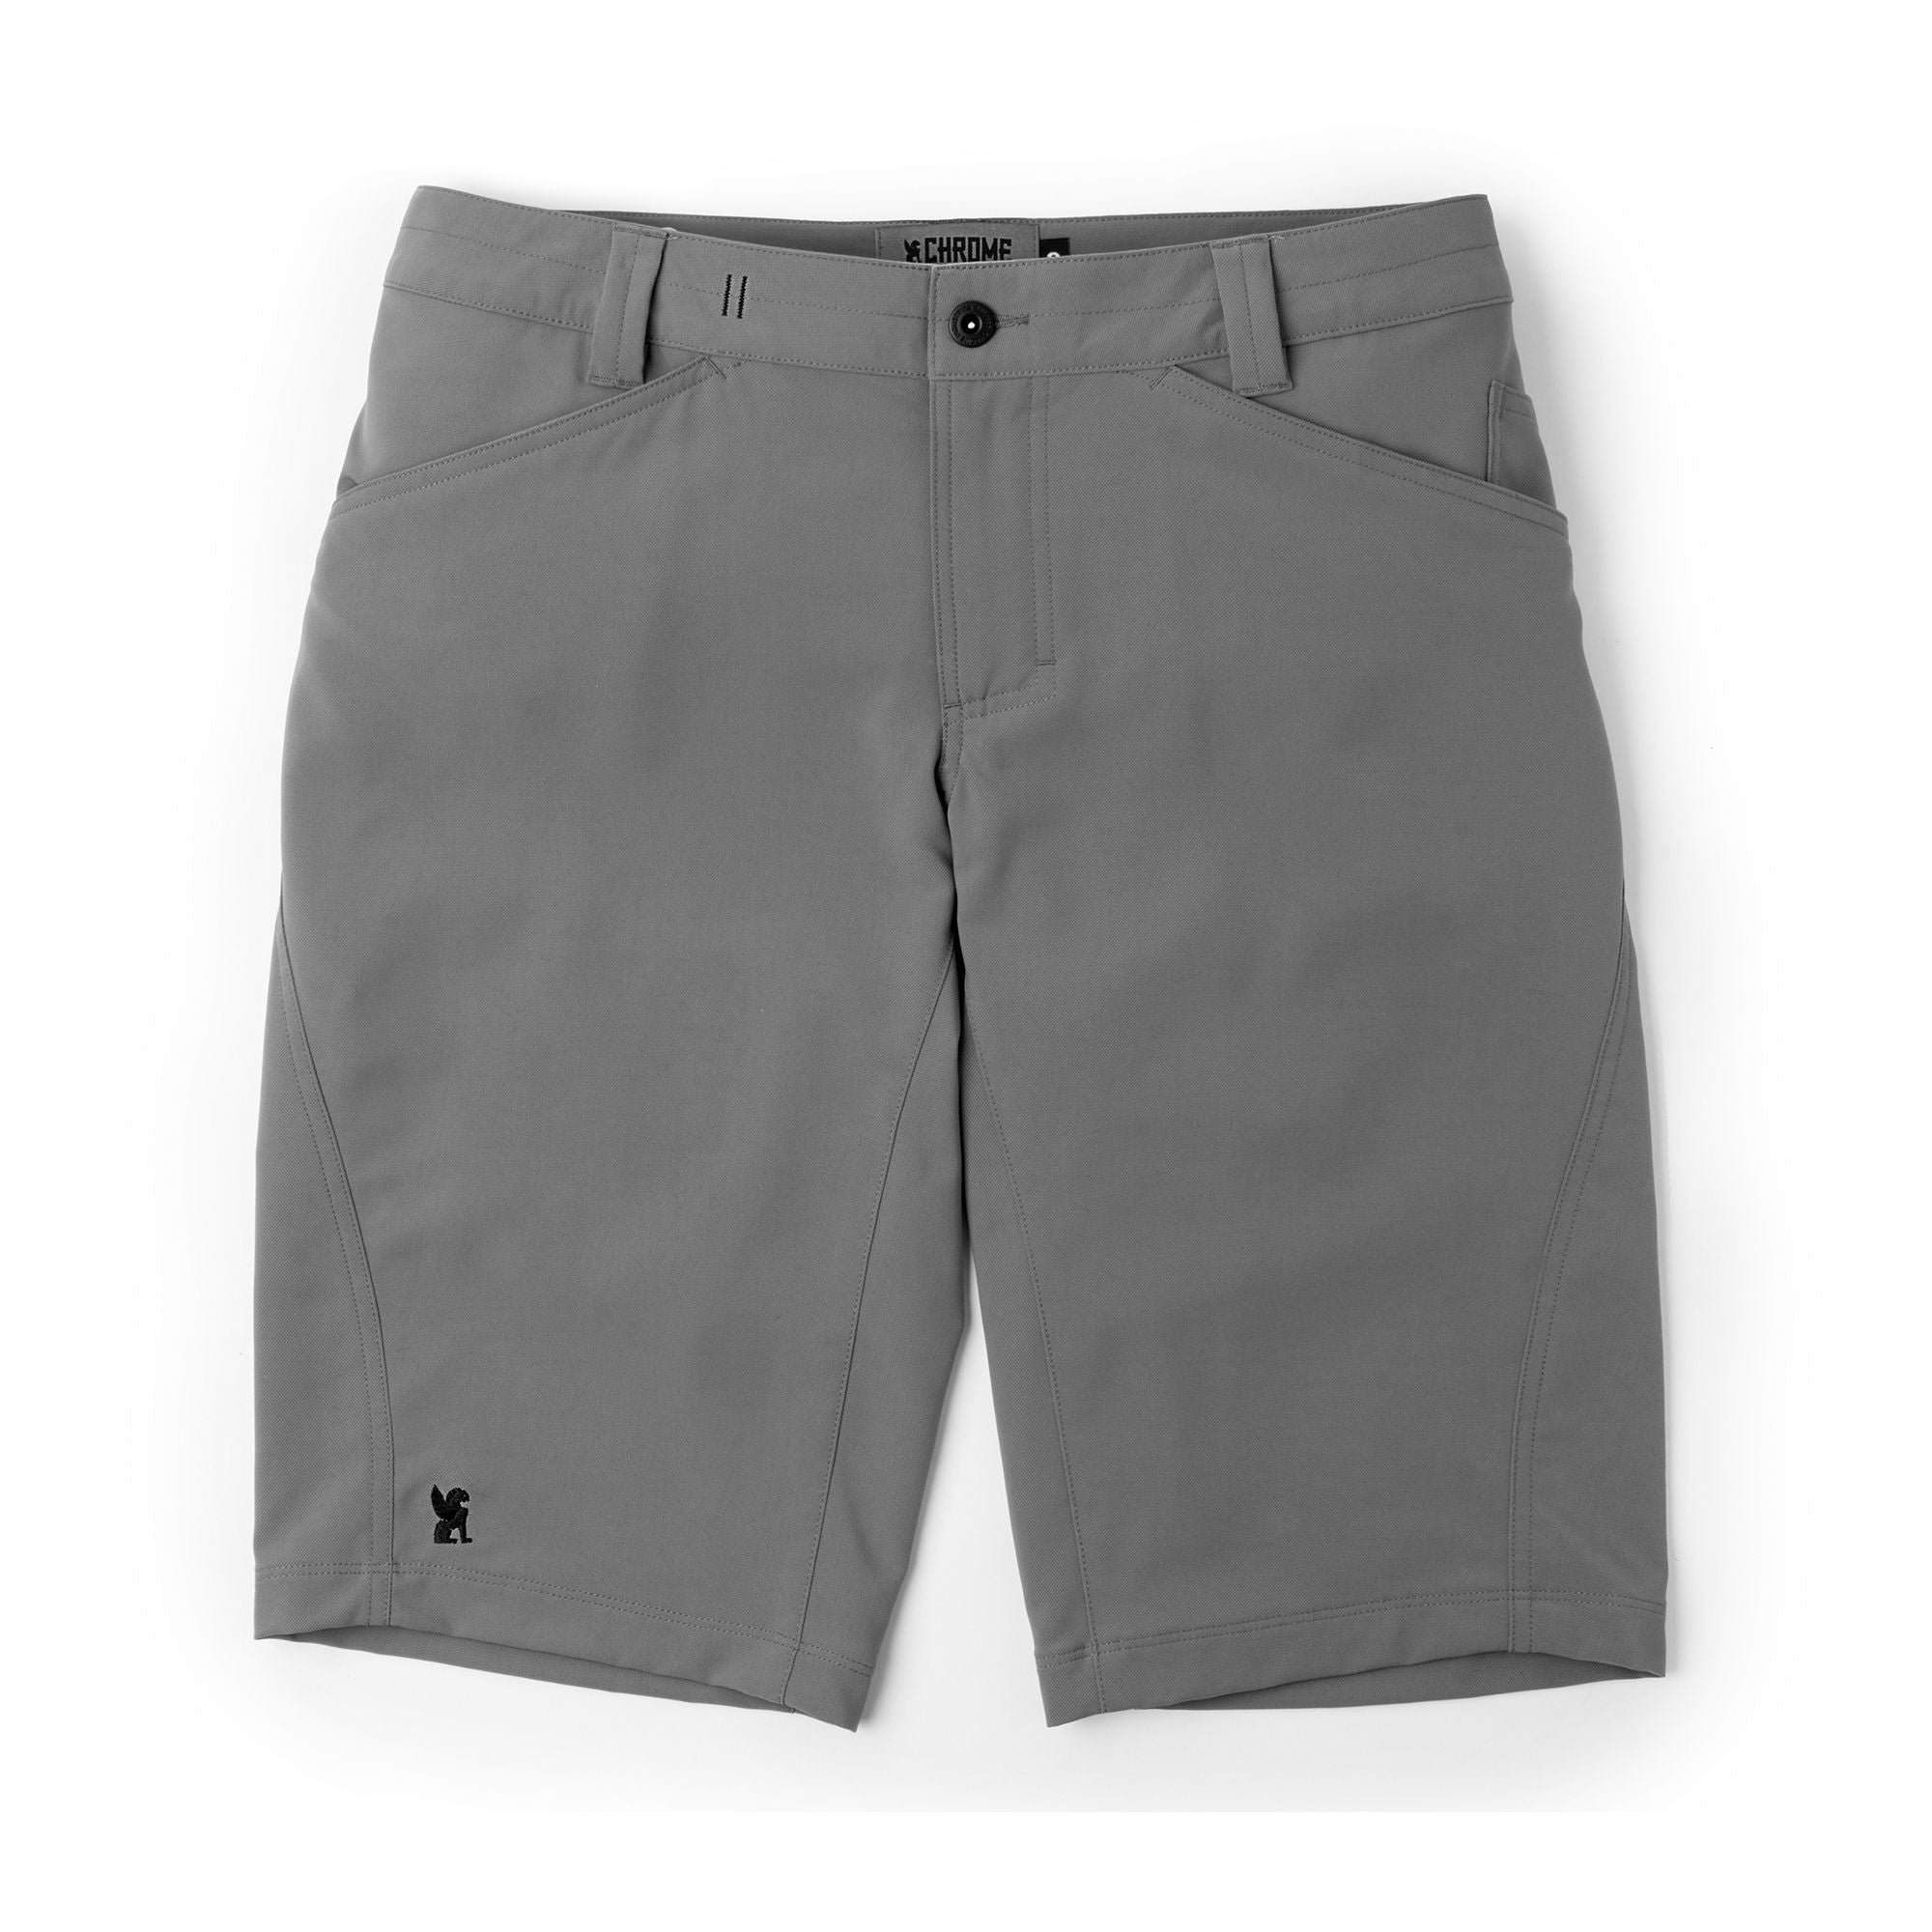 Chrome Union Shorts - Castle Rock